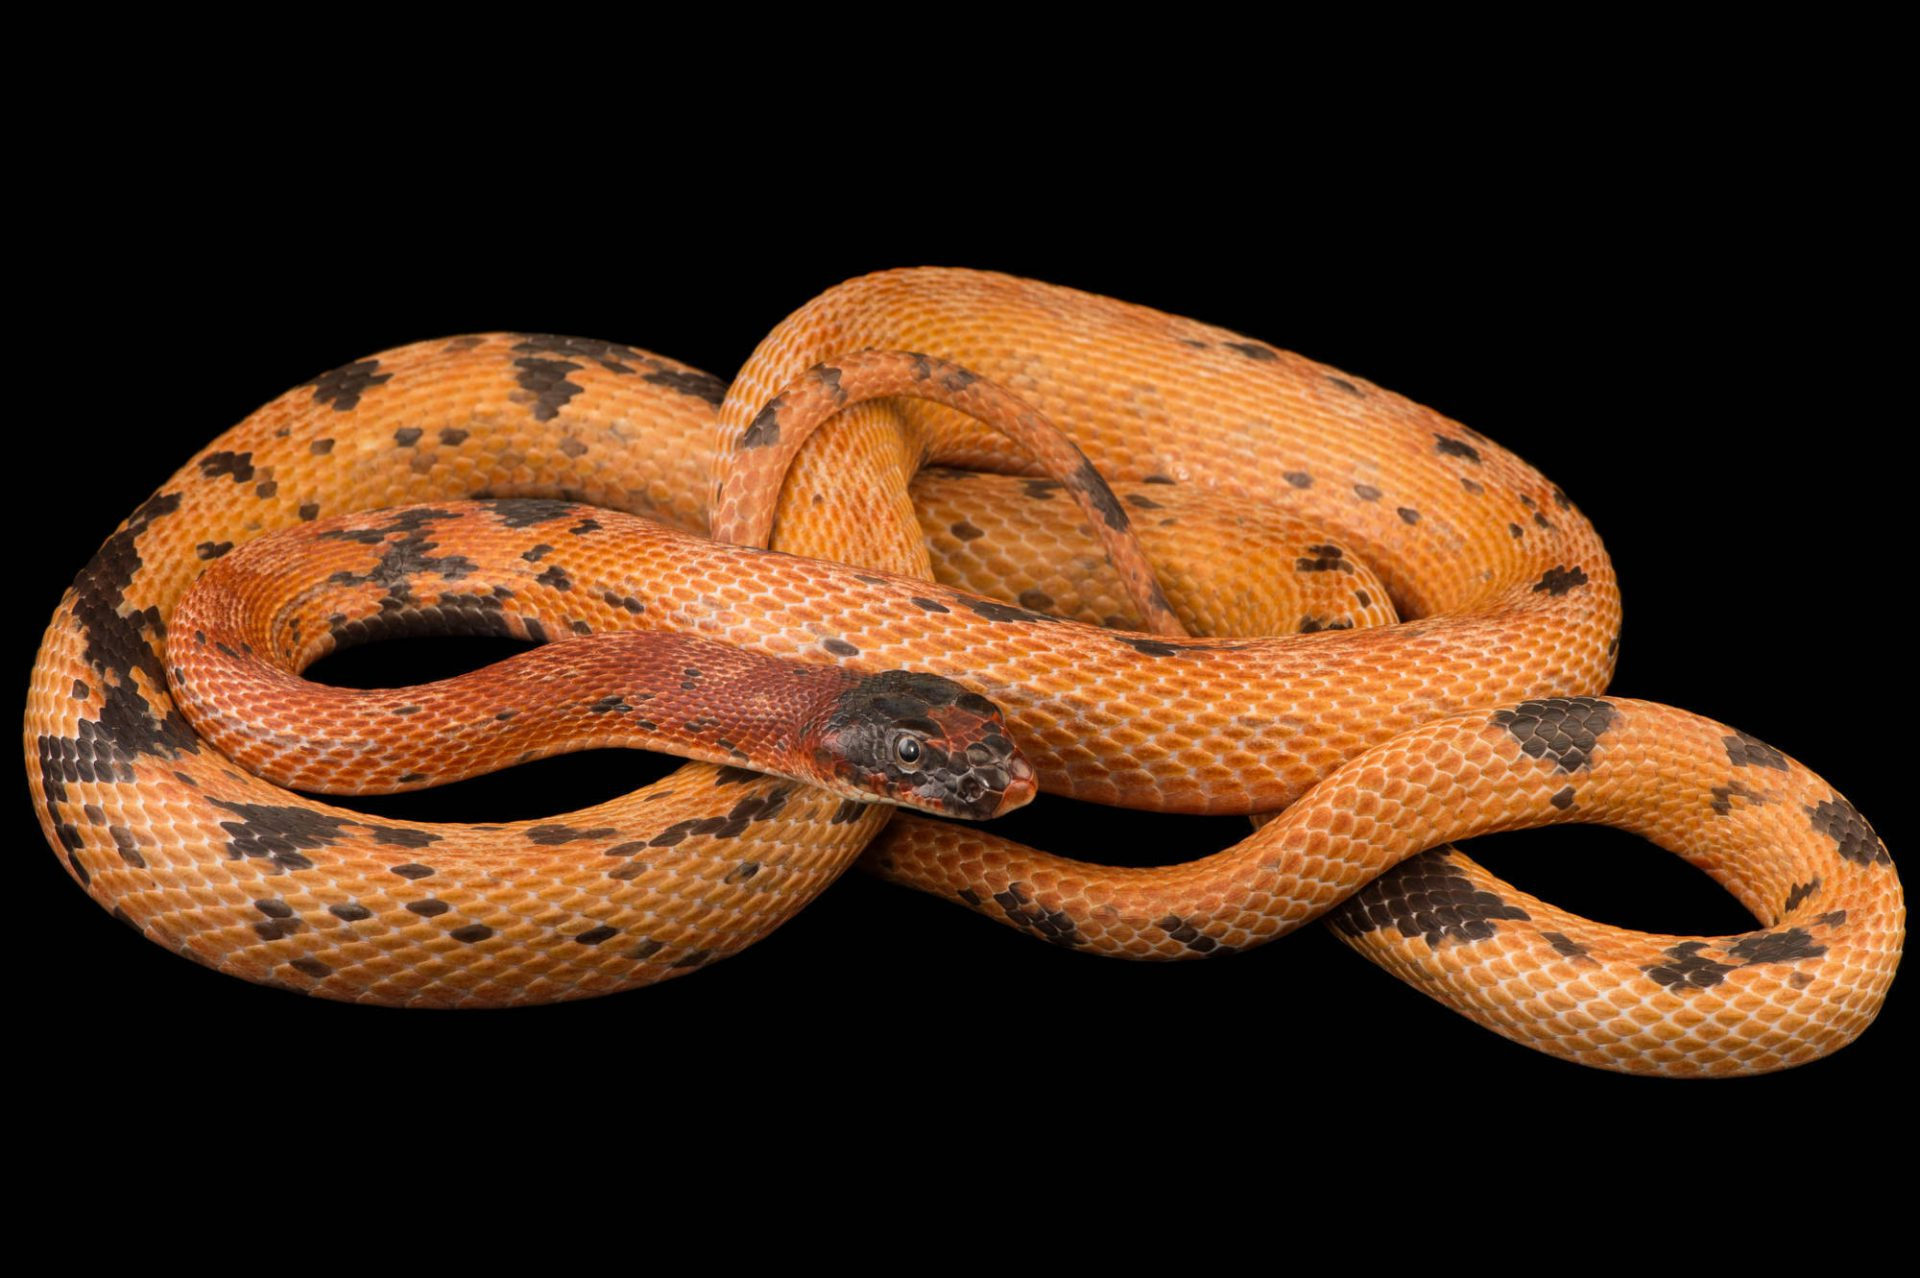 Picture of a royal diadem ratsnake (Spalerosophis diadema atriceps) from a private collection.